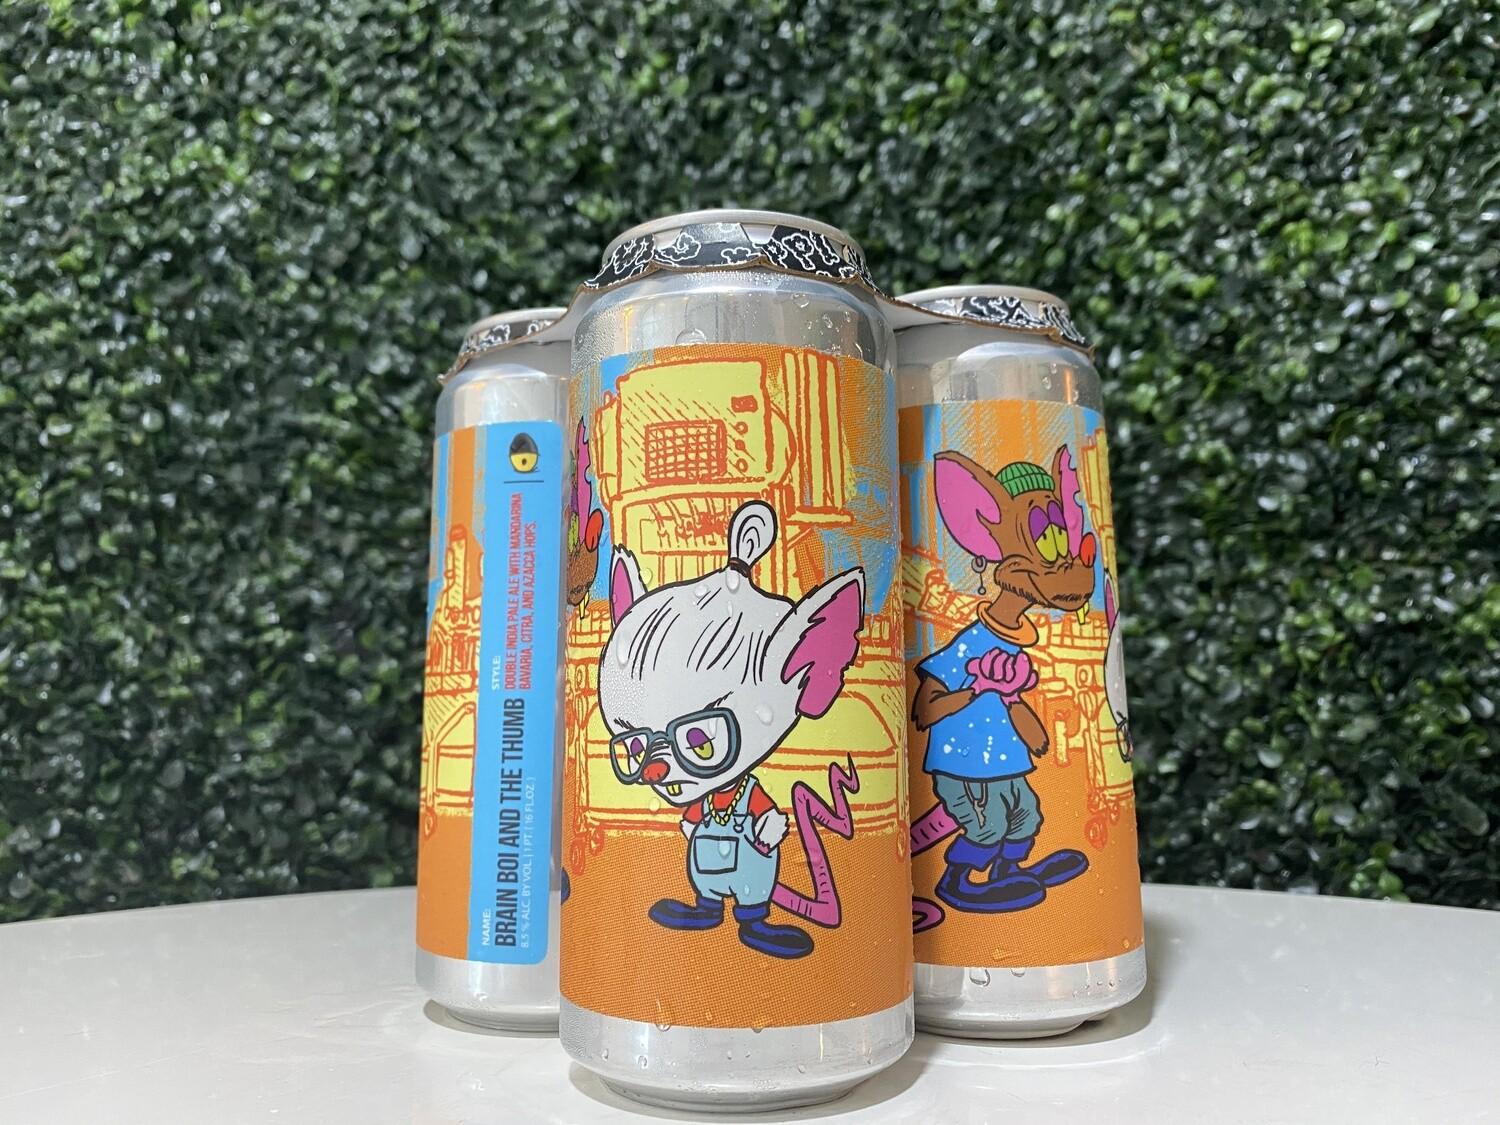 Tripping Animals - Brain Boi And the Thumb - DIPA - 8.5% ABV - 16oz Can